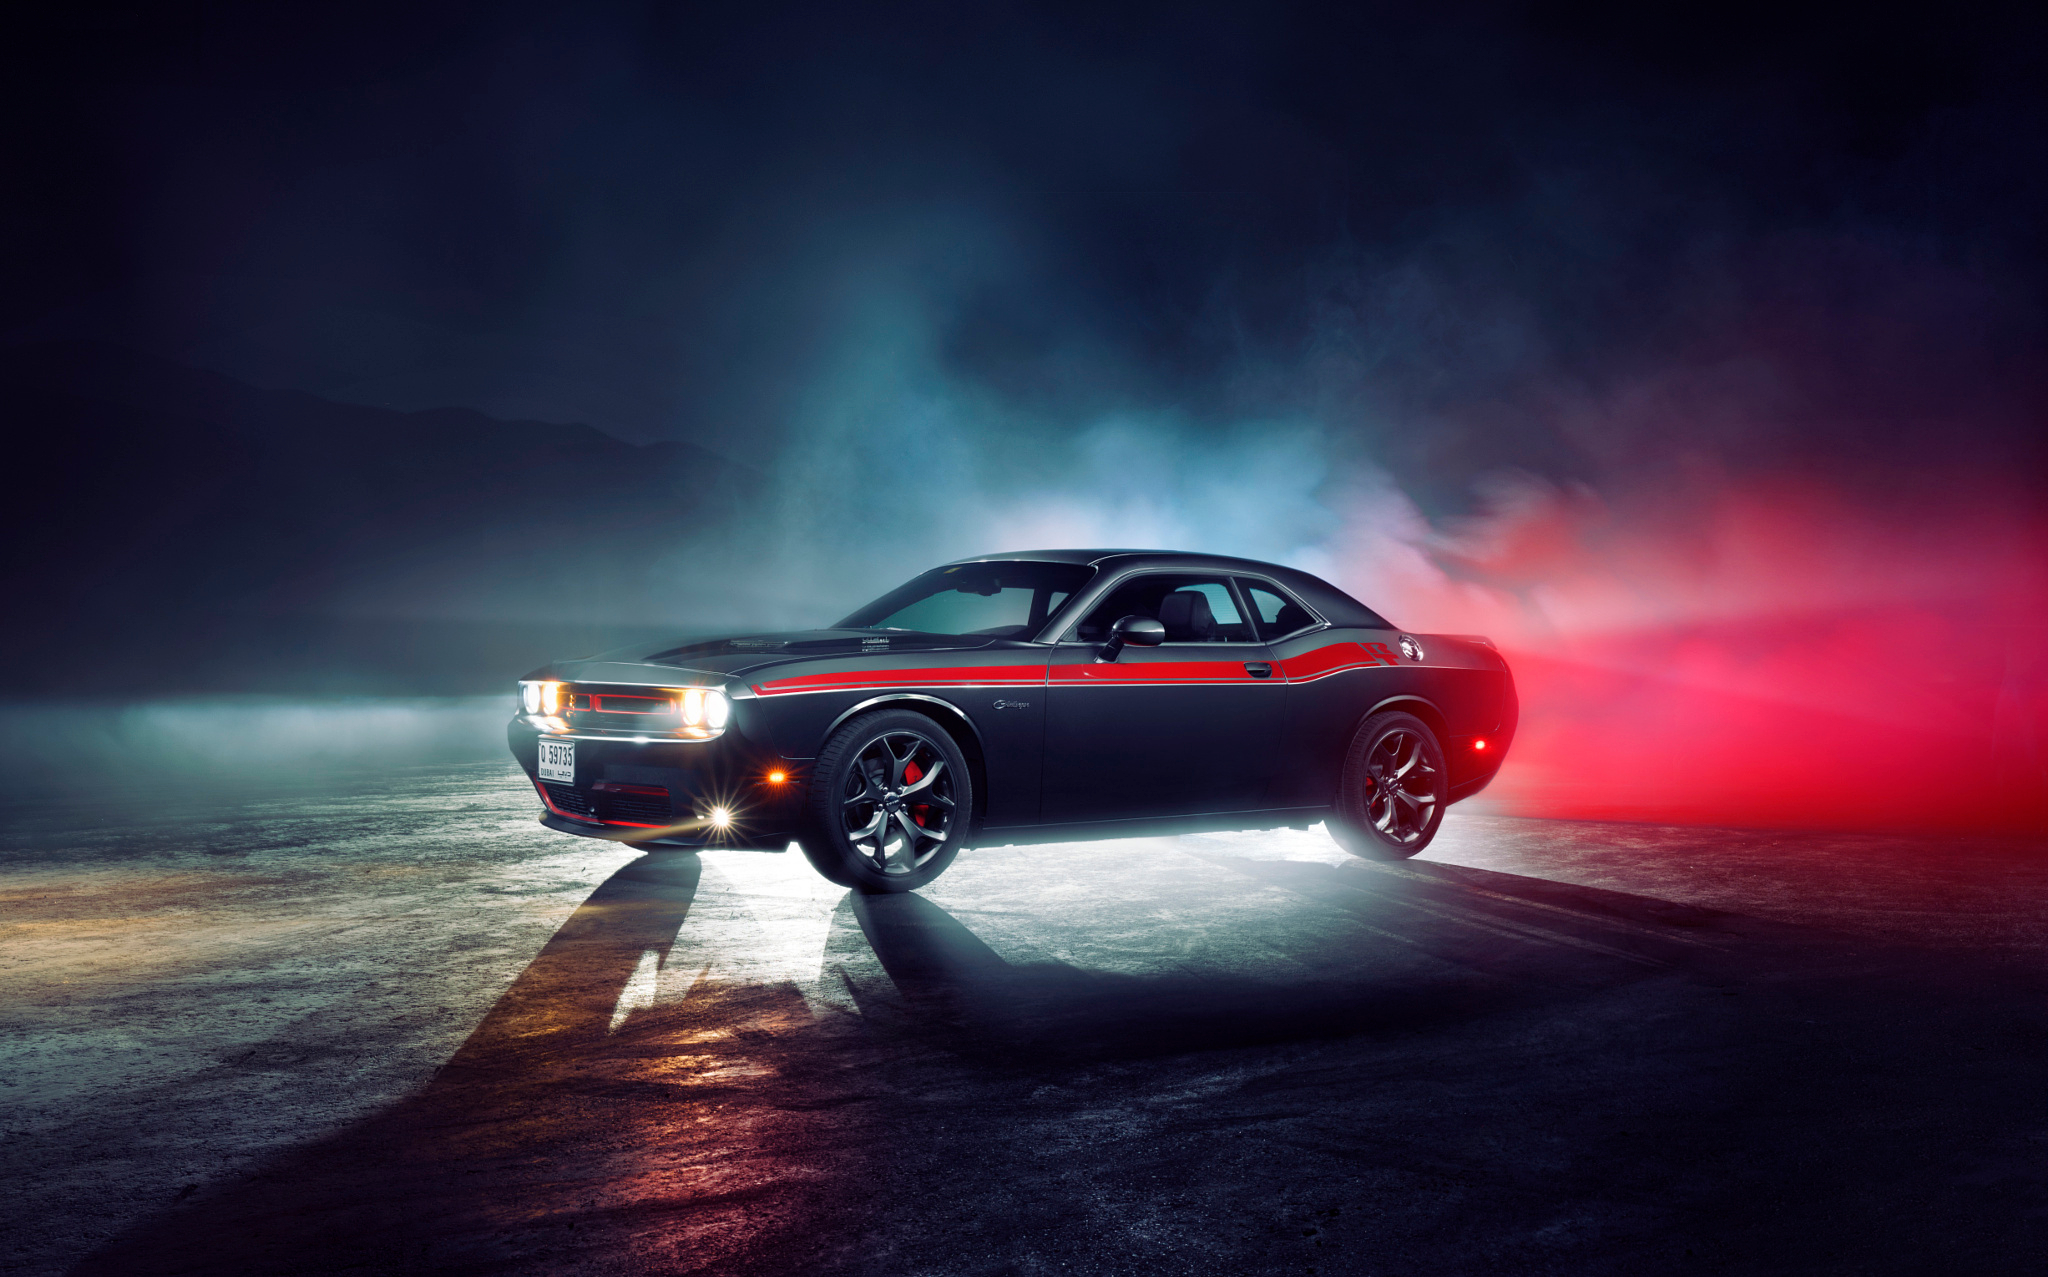 56 Dodge Challenger RT HD Wallpapers Background Images 2048x1277